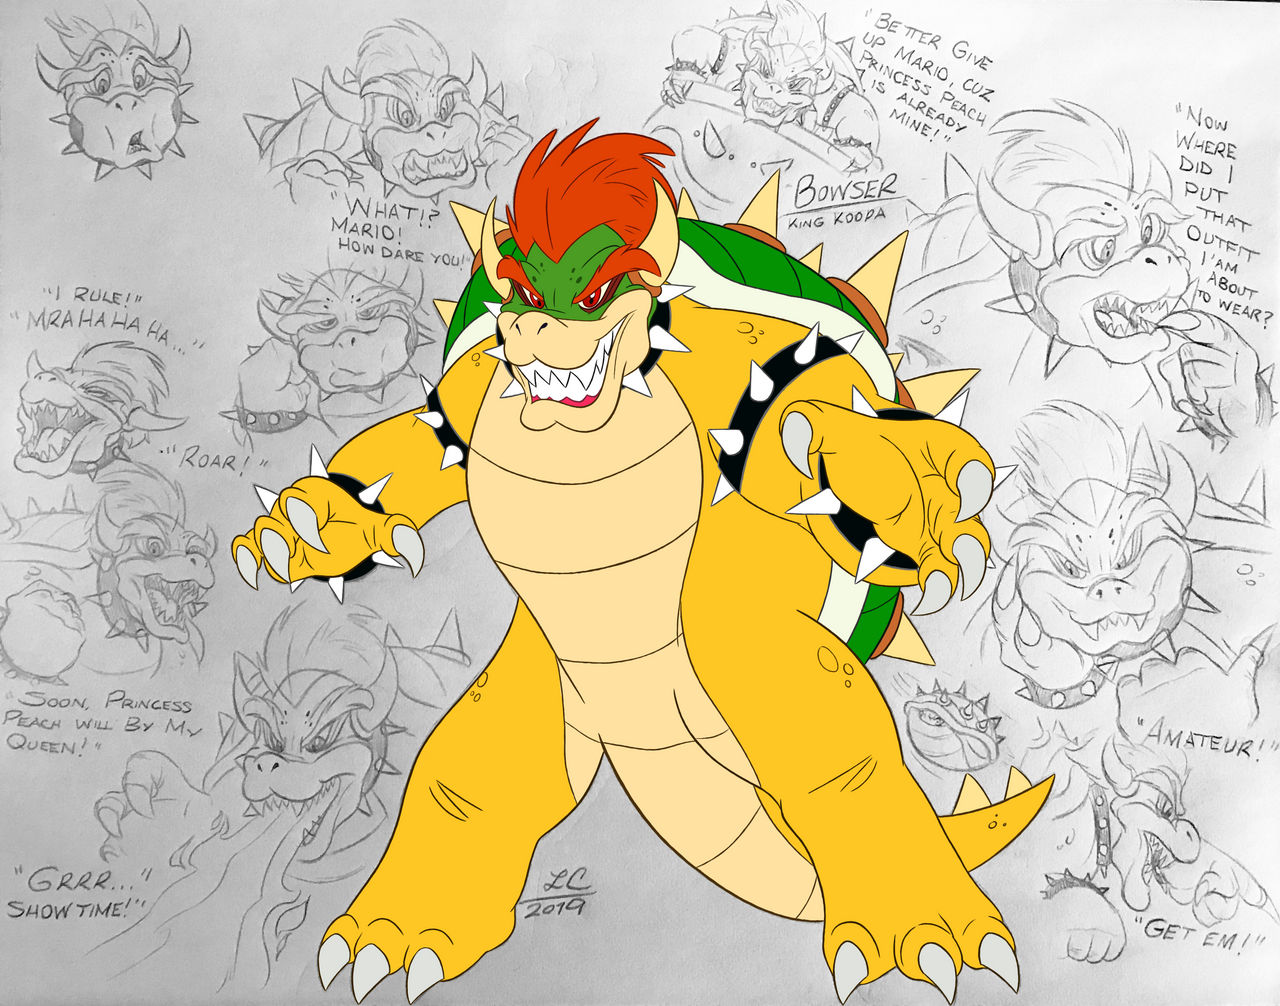 Super Mario Bros Bowser Lc By Liamcampbell On Deviantart